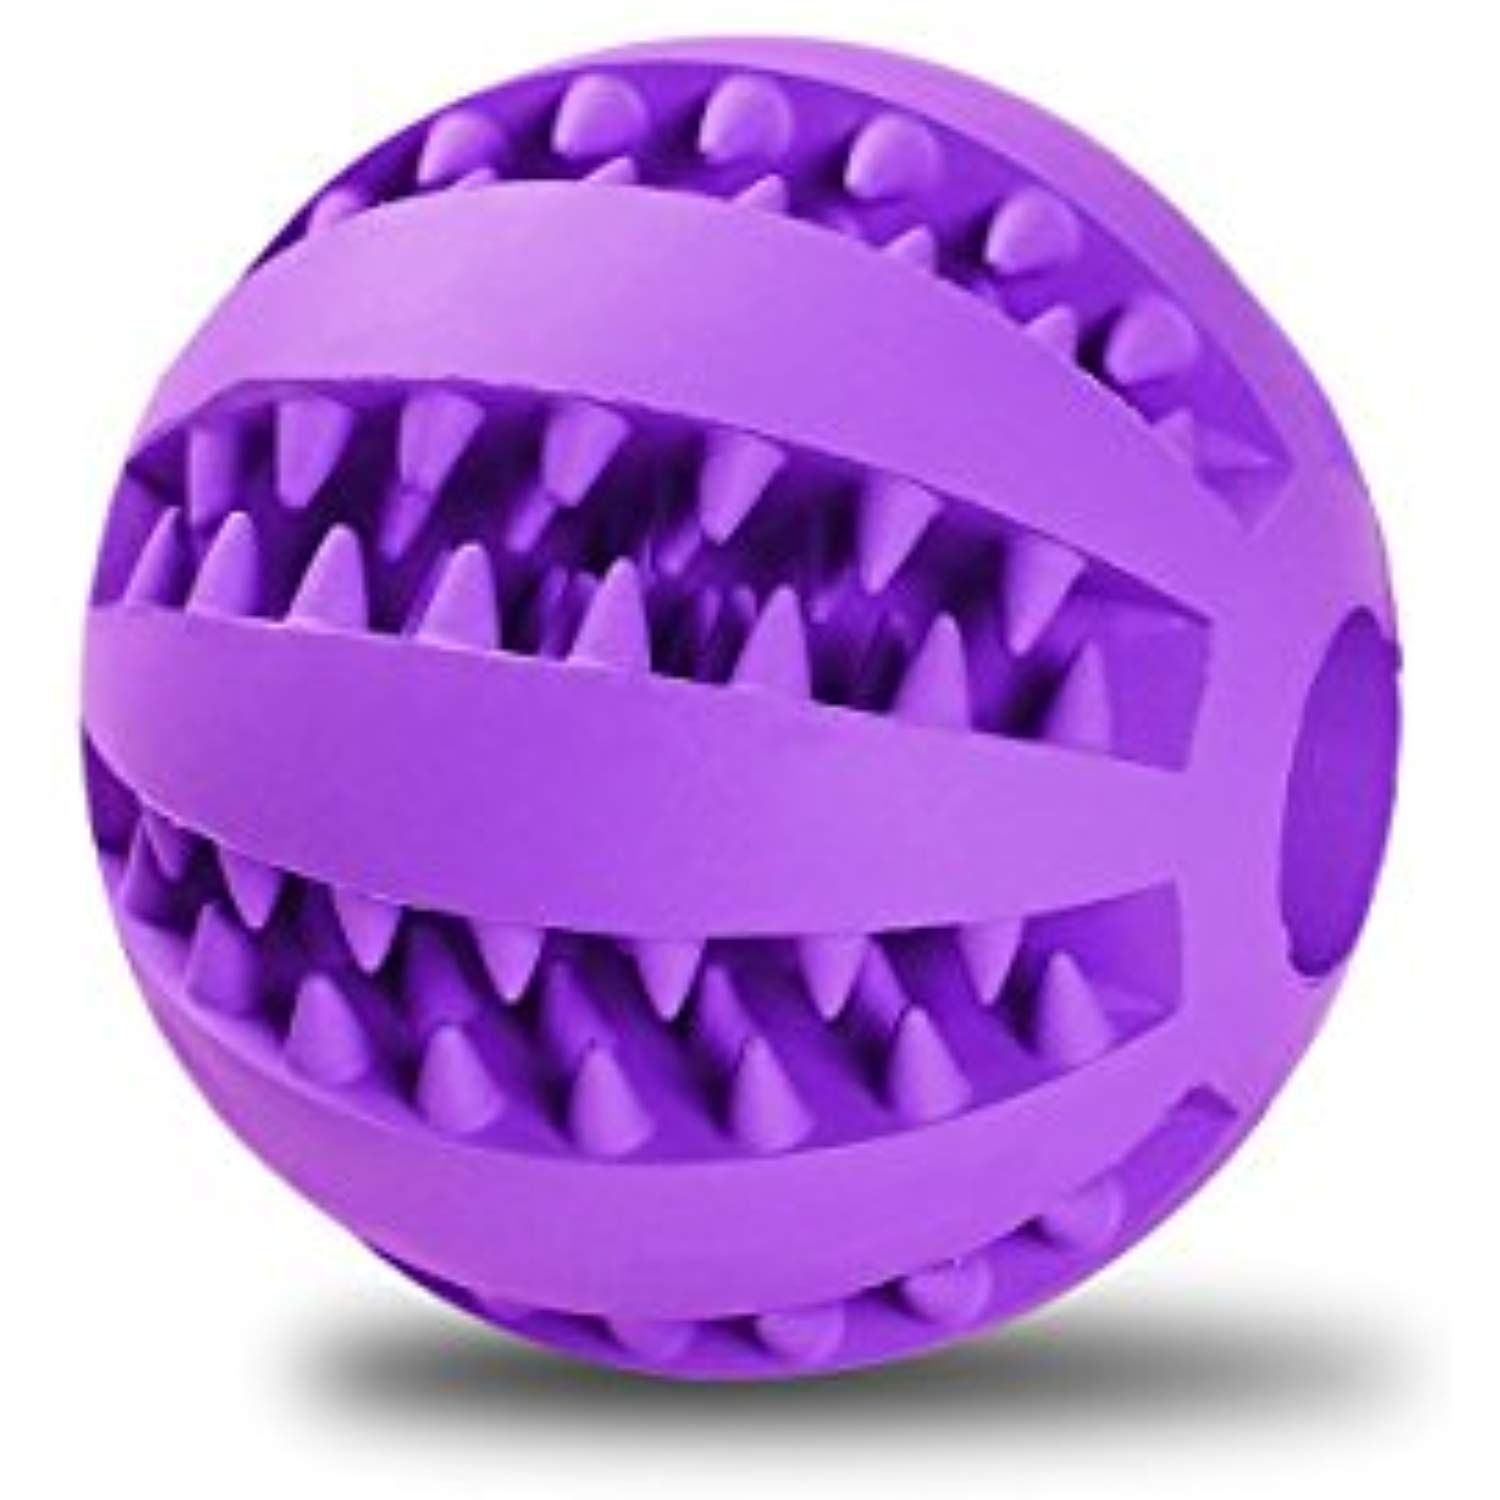 Toy Ball For Dogs Dental Treat Bite Resistant Jakpak Durable